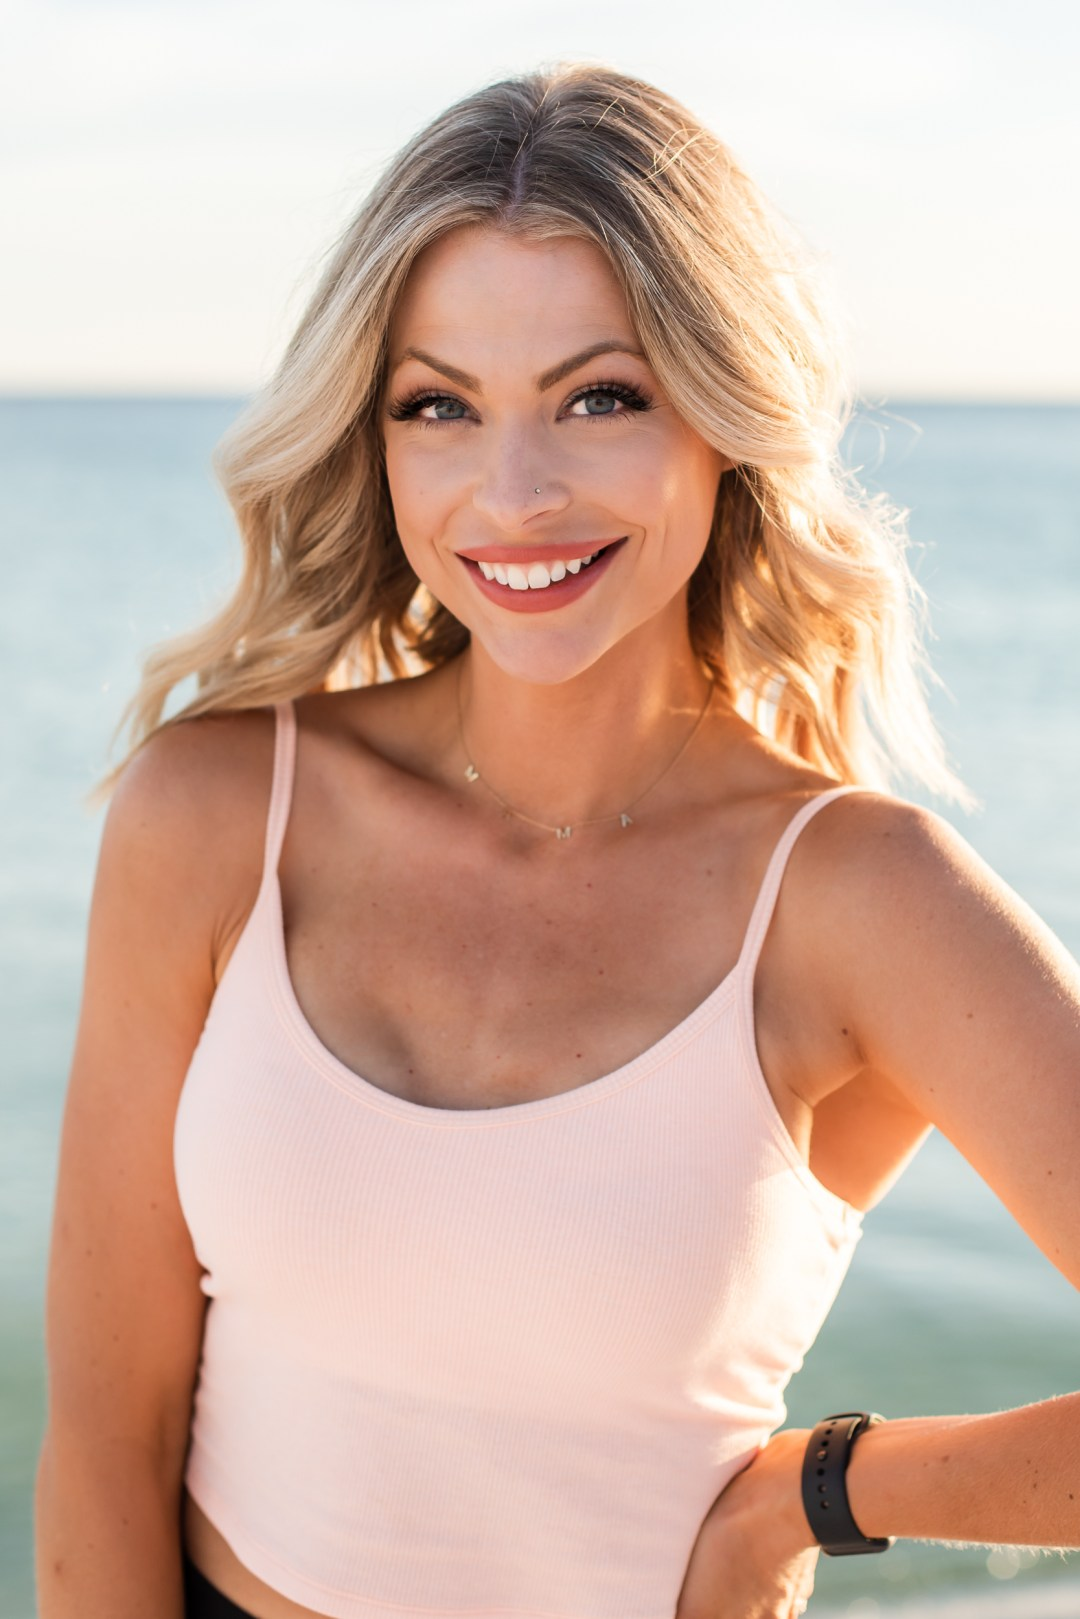 small business promotional video and photo session for beach body fitness program on the beach in Destin